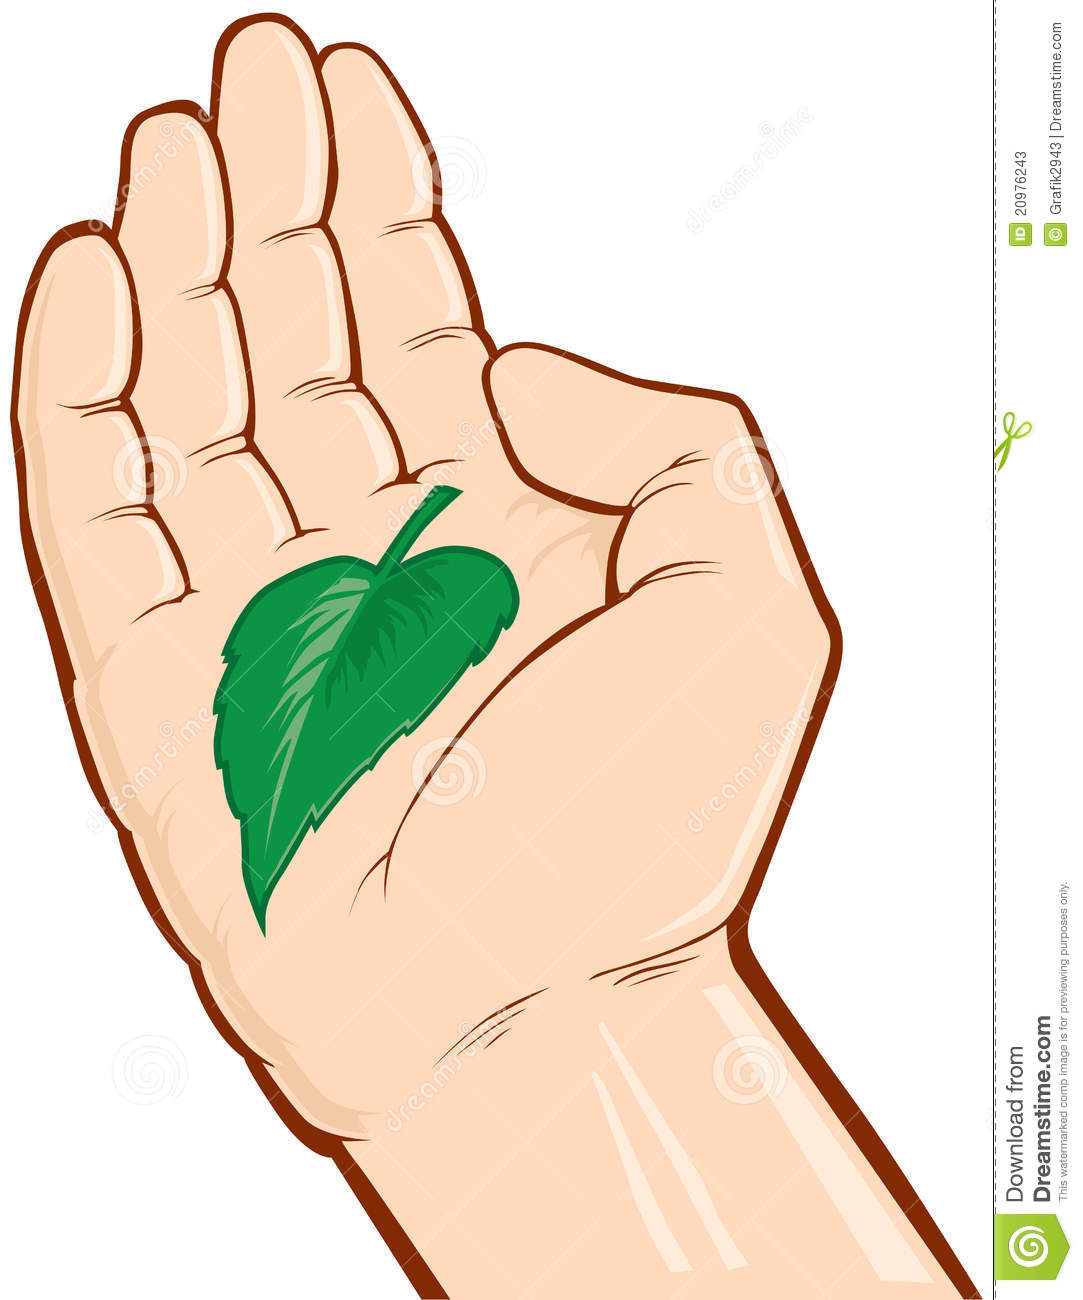 Green Earth Hands | Clipart Panda - Free Clipart Images